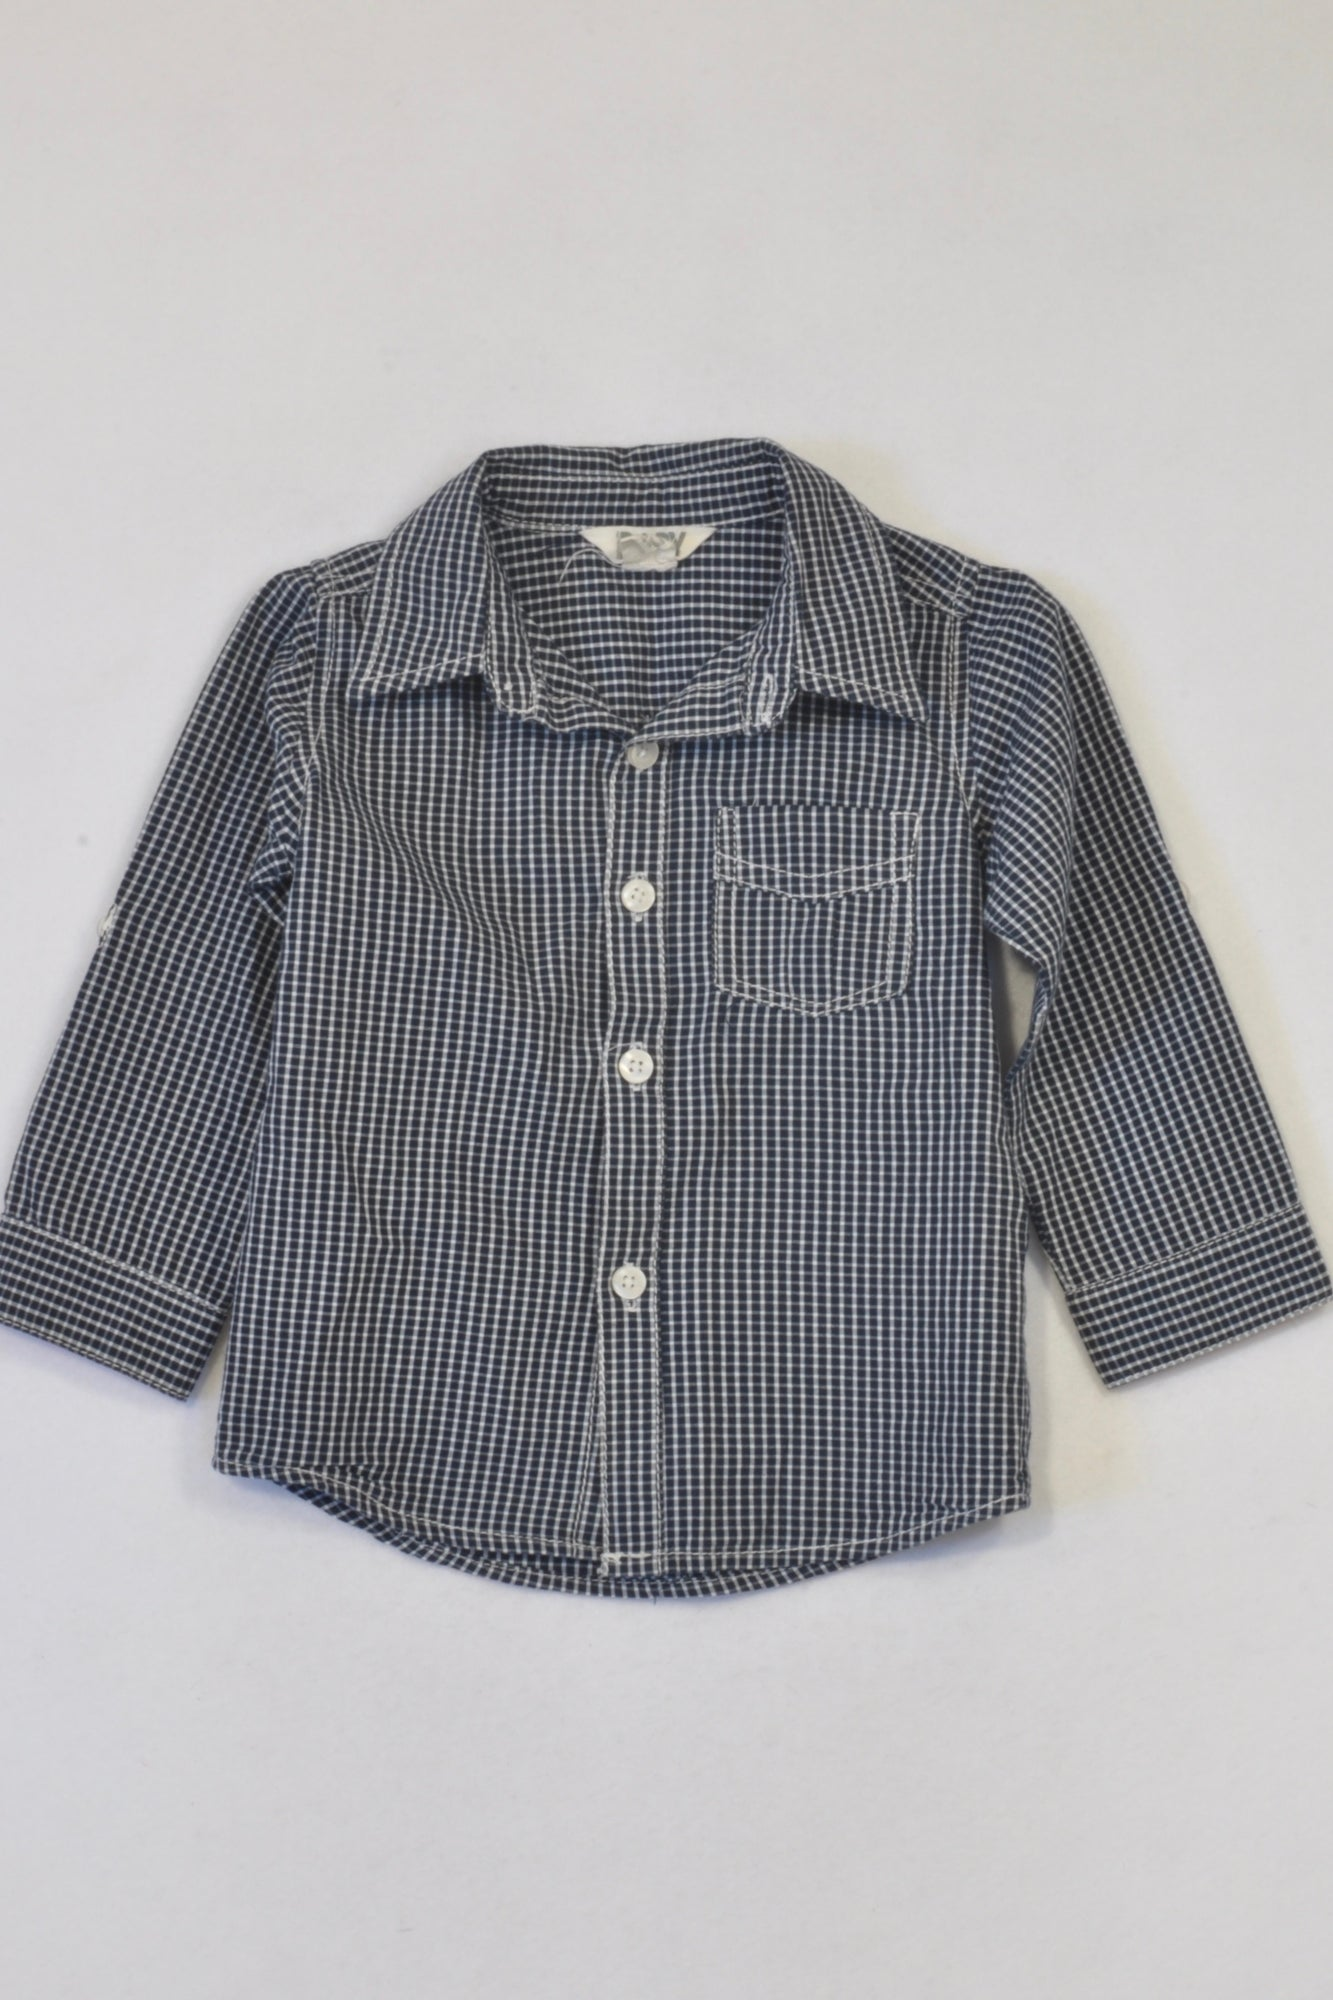 Cotton On Navy & White Plaid Collared T-shirt Girls 12-18 months